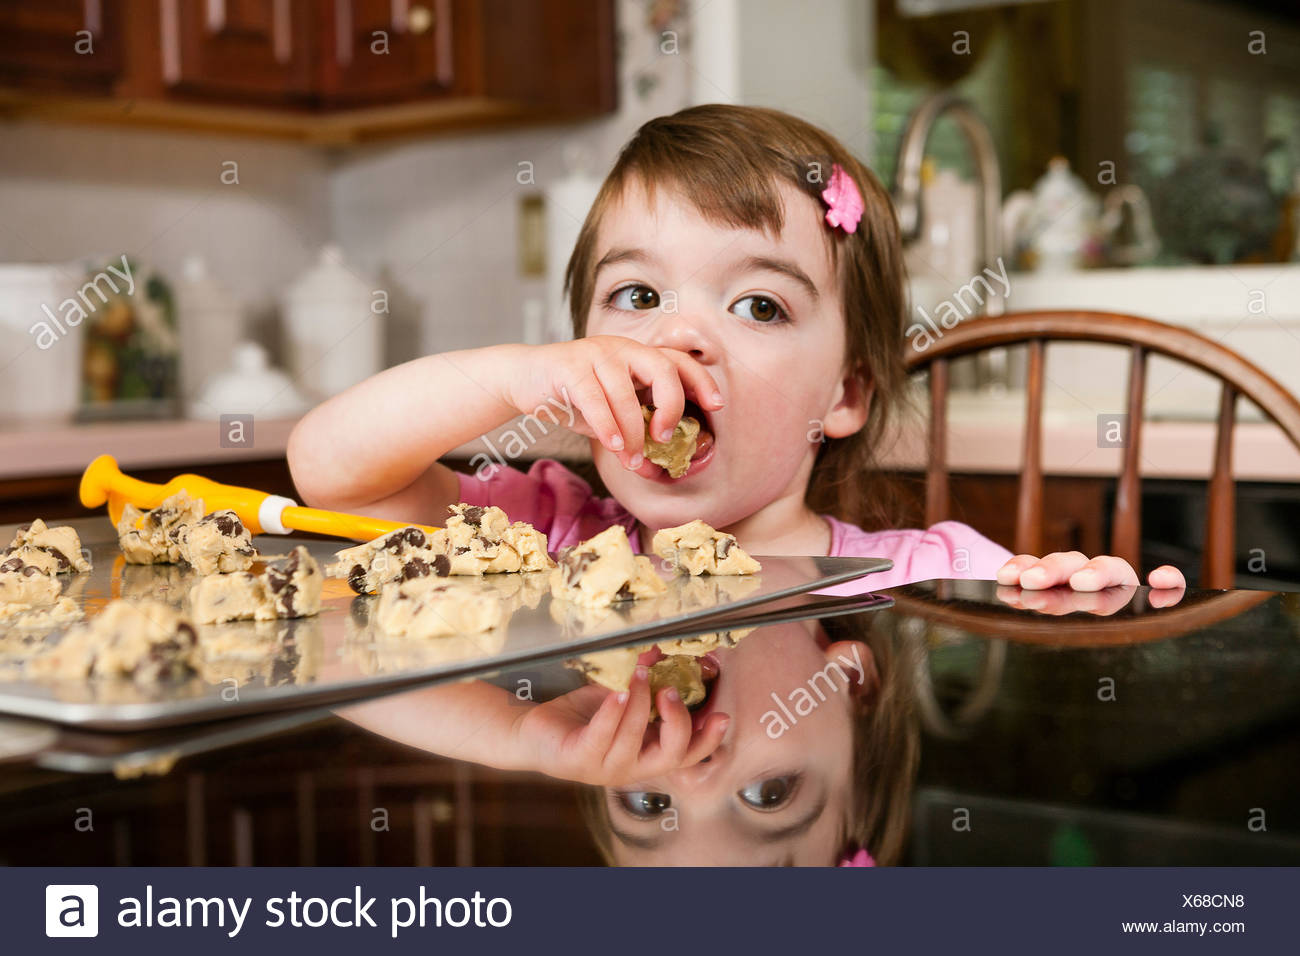 Close up portrait of young female toddler eating currant cakes Stock Photo